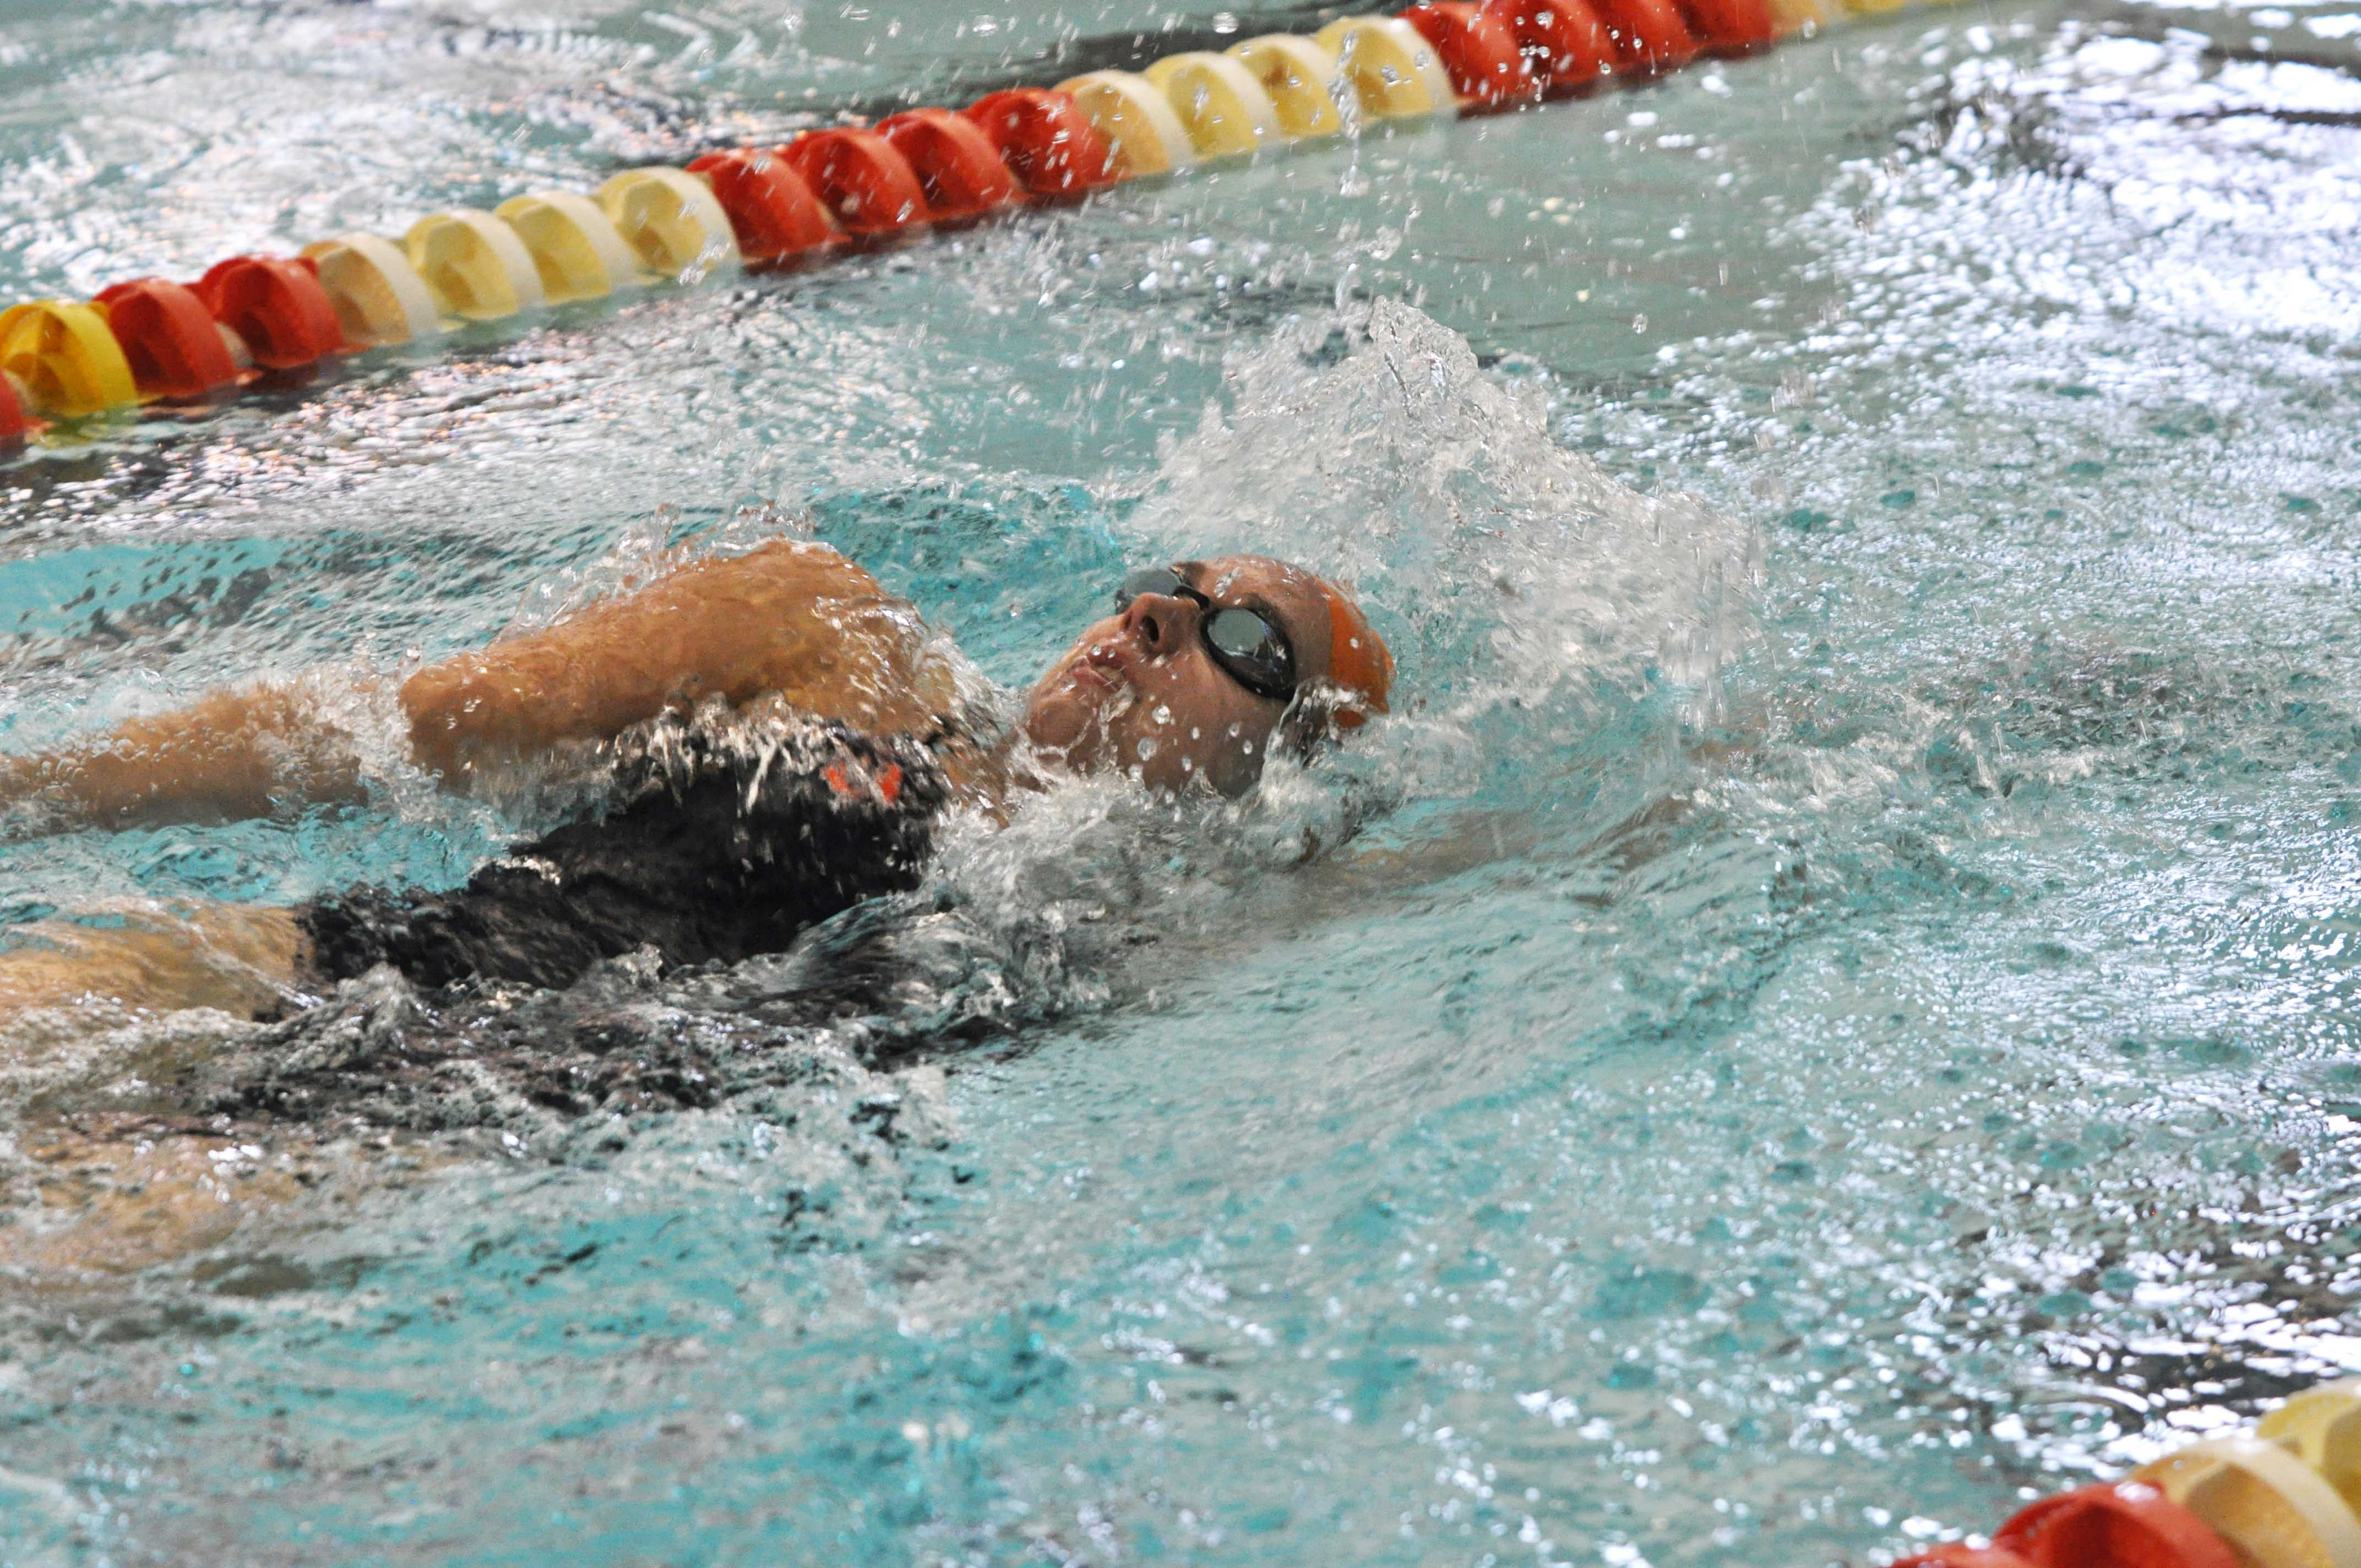 Sam Stratford, sophomore, swims backstroke in the 400 yard IM at the Fighting Illini Dual Meet Spectacular in the ARC Pool on October 16, 2015. Stratford claimed the 200 IM individual first-place honors against Iowa State.